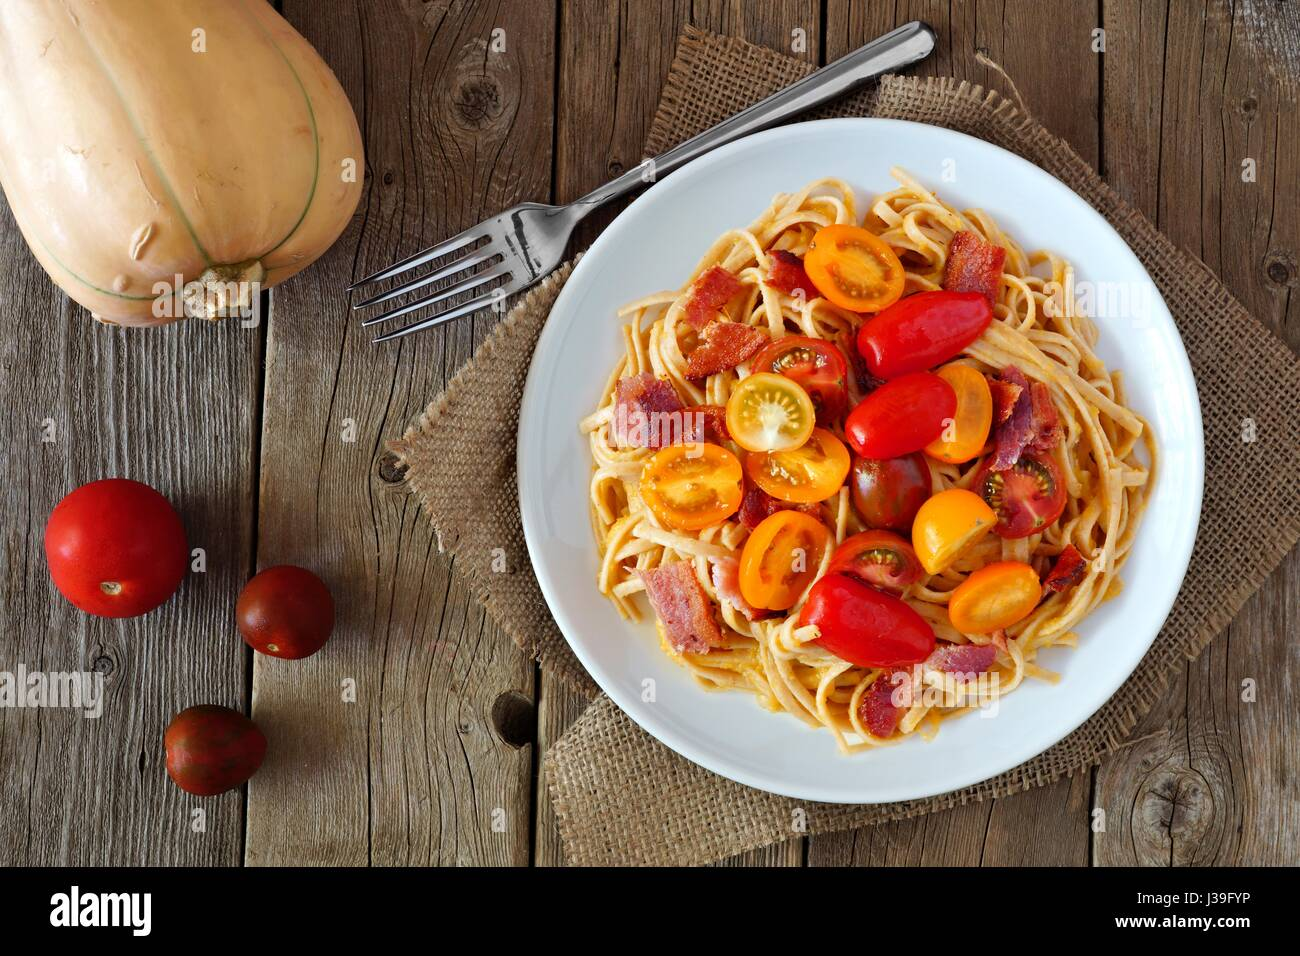 Creamy butternut squash pasta dish with bacon and cherry tomatoes, above view on rustic wood - Stock Image